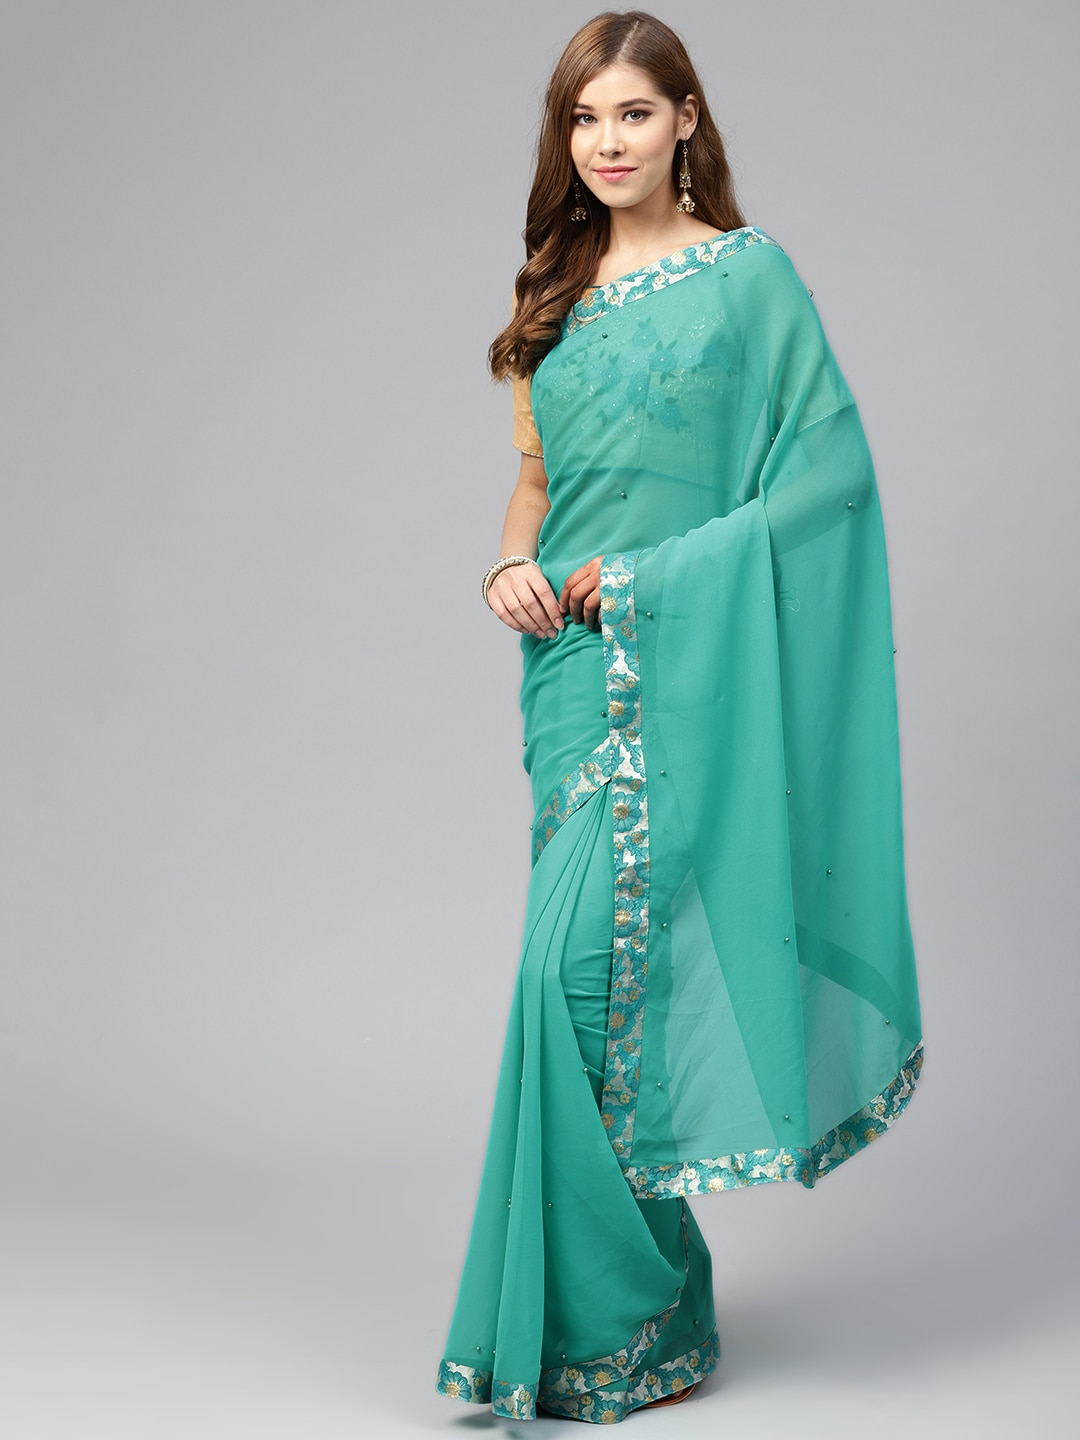 664d03f1d856ff Georgette Sarees - Buy Georgette Saree Online in India